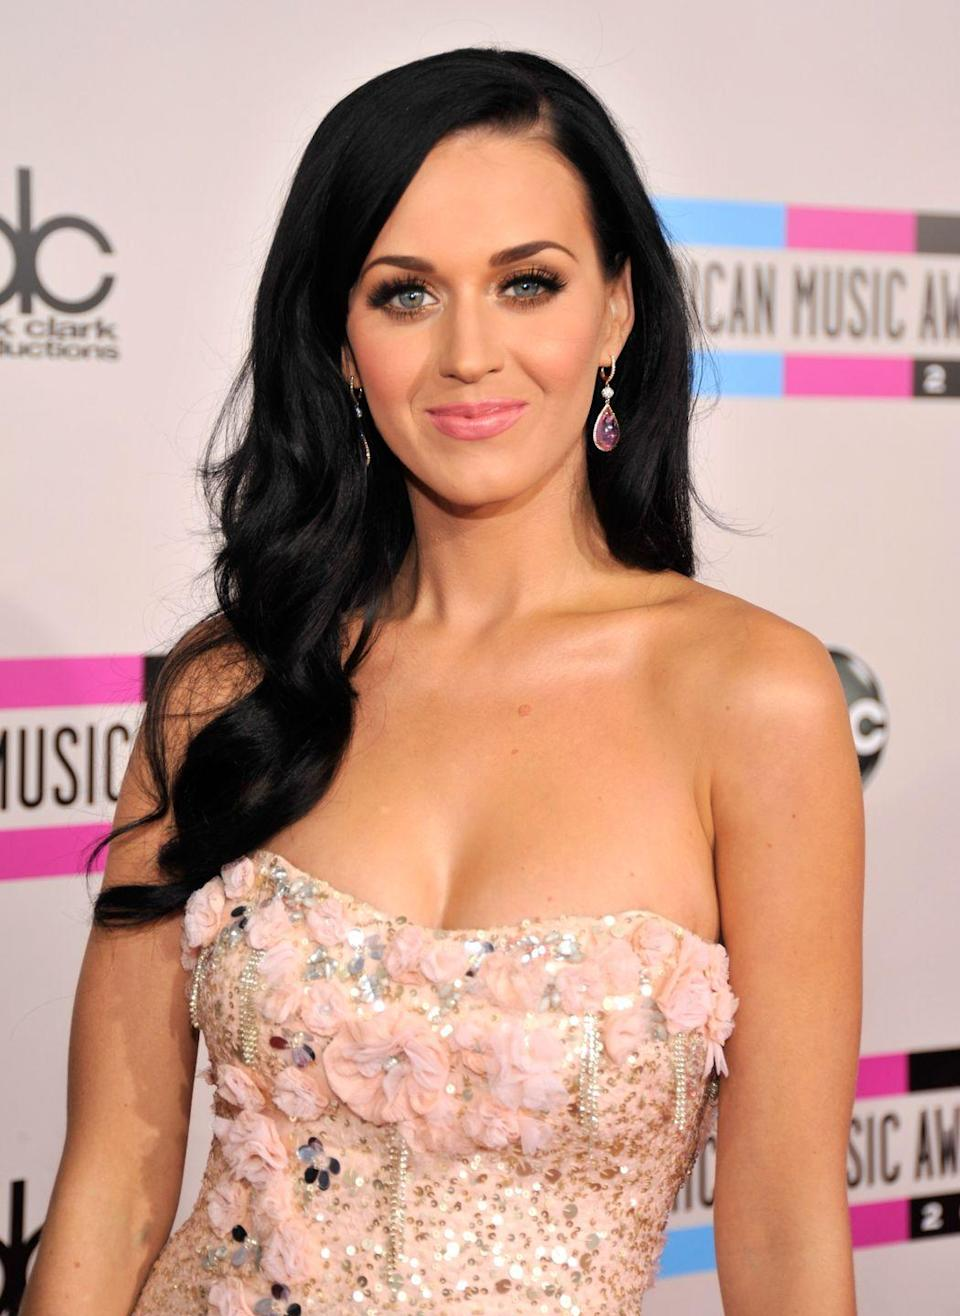 """<p>Taylor Swift isn't the only famous person Katy Perry has written a song about. Though she's happily with <a href=""""https://www.goodhousekeeping.com/life/a26534892/orlando-bloom-katy-perry-proposal-details/"""" rel=""""nofollow noopener"""" target=""""_blank"""" data-ylk=""""slk:Orlando Bloom"""" class=""""link rapid-noclick-resp"""">Orlando Bloom</a> now, it turns out that her """"One That Got Away"""" tune is about none other than <a href=""""https://www.goodhousekeeping.com/life/relationships/a21206858/josh-groban-tony-awards-girlfriends/"""" rel=""""nofollow noopener"""" target=""""_blank"""" data-ylk=""""slk:Josh Groban"""" class=""""link rapid-noclick-resp"""">Josh Groban</a>. Katy revealed this fact to <a href=""""https://www.businessinsider.com/katy-perry-one-that-got-away-about-josh-groban-2017-6?r=UK&IR=T"""" rel=""""nofollow noopener"""" target=""""_blank"""" data-ylk=""""slk:James Corden"""" class=""""link rapid-noclick-resp"""">James Corden</a>, saying Josh was """"one of my good friends."""" </p>"""